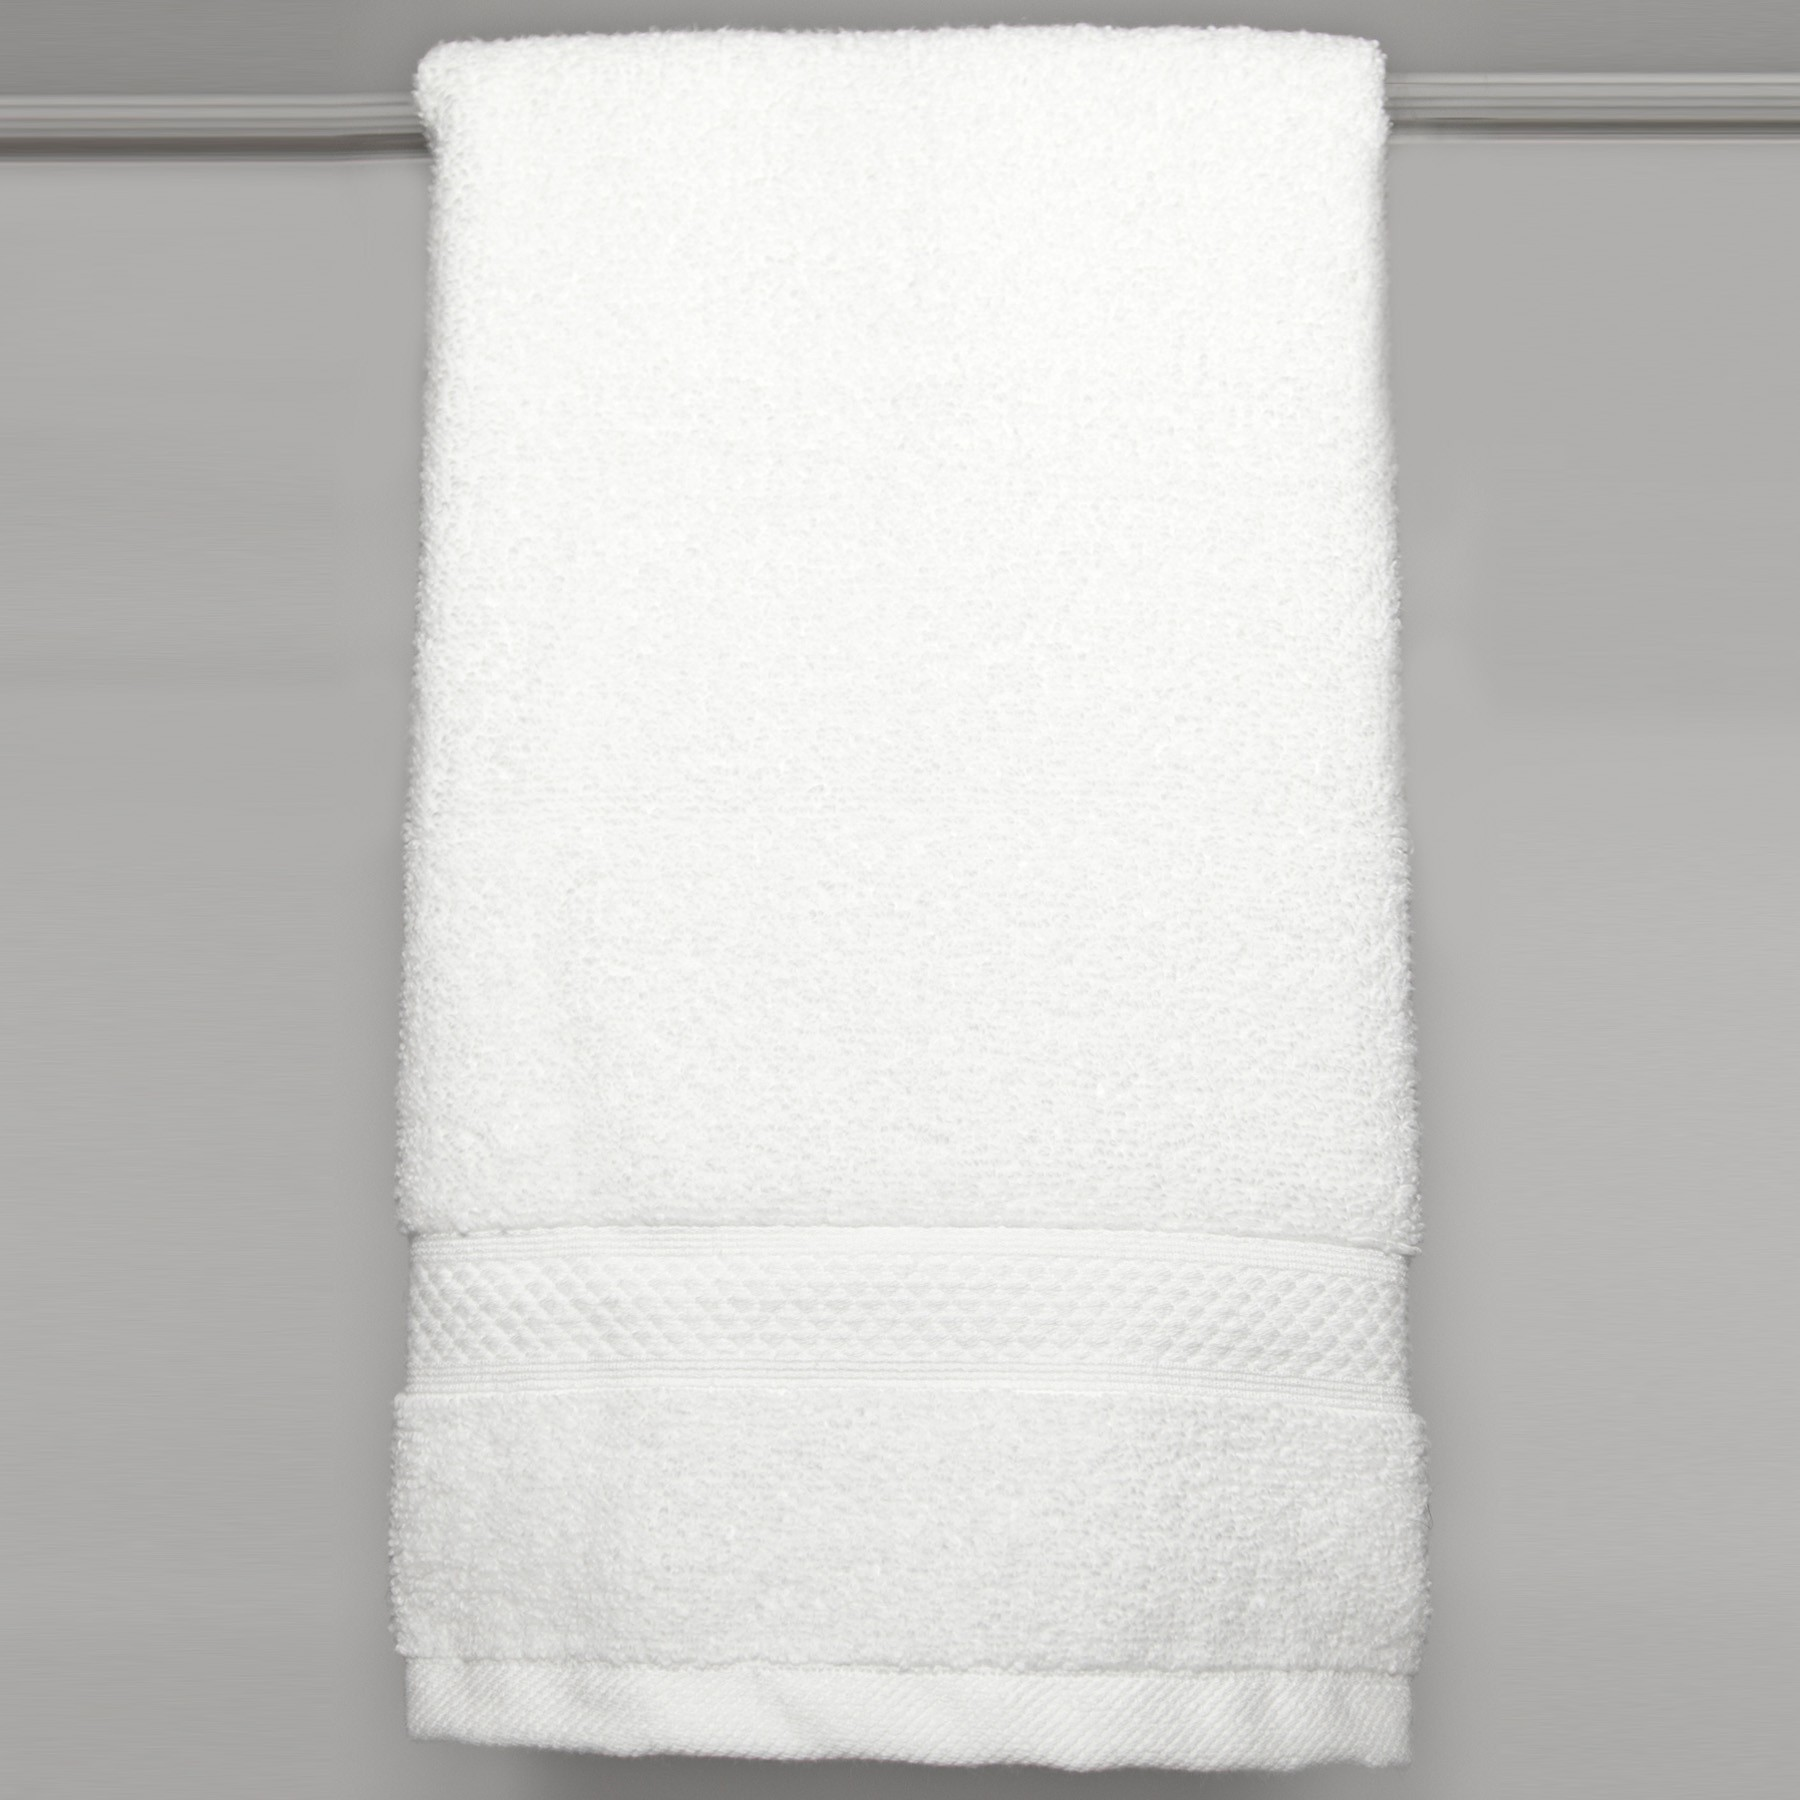 Hand towel premier hotel supplies for How to get towels white